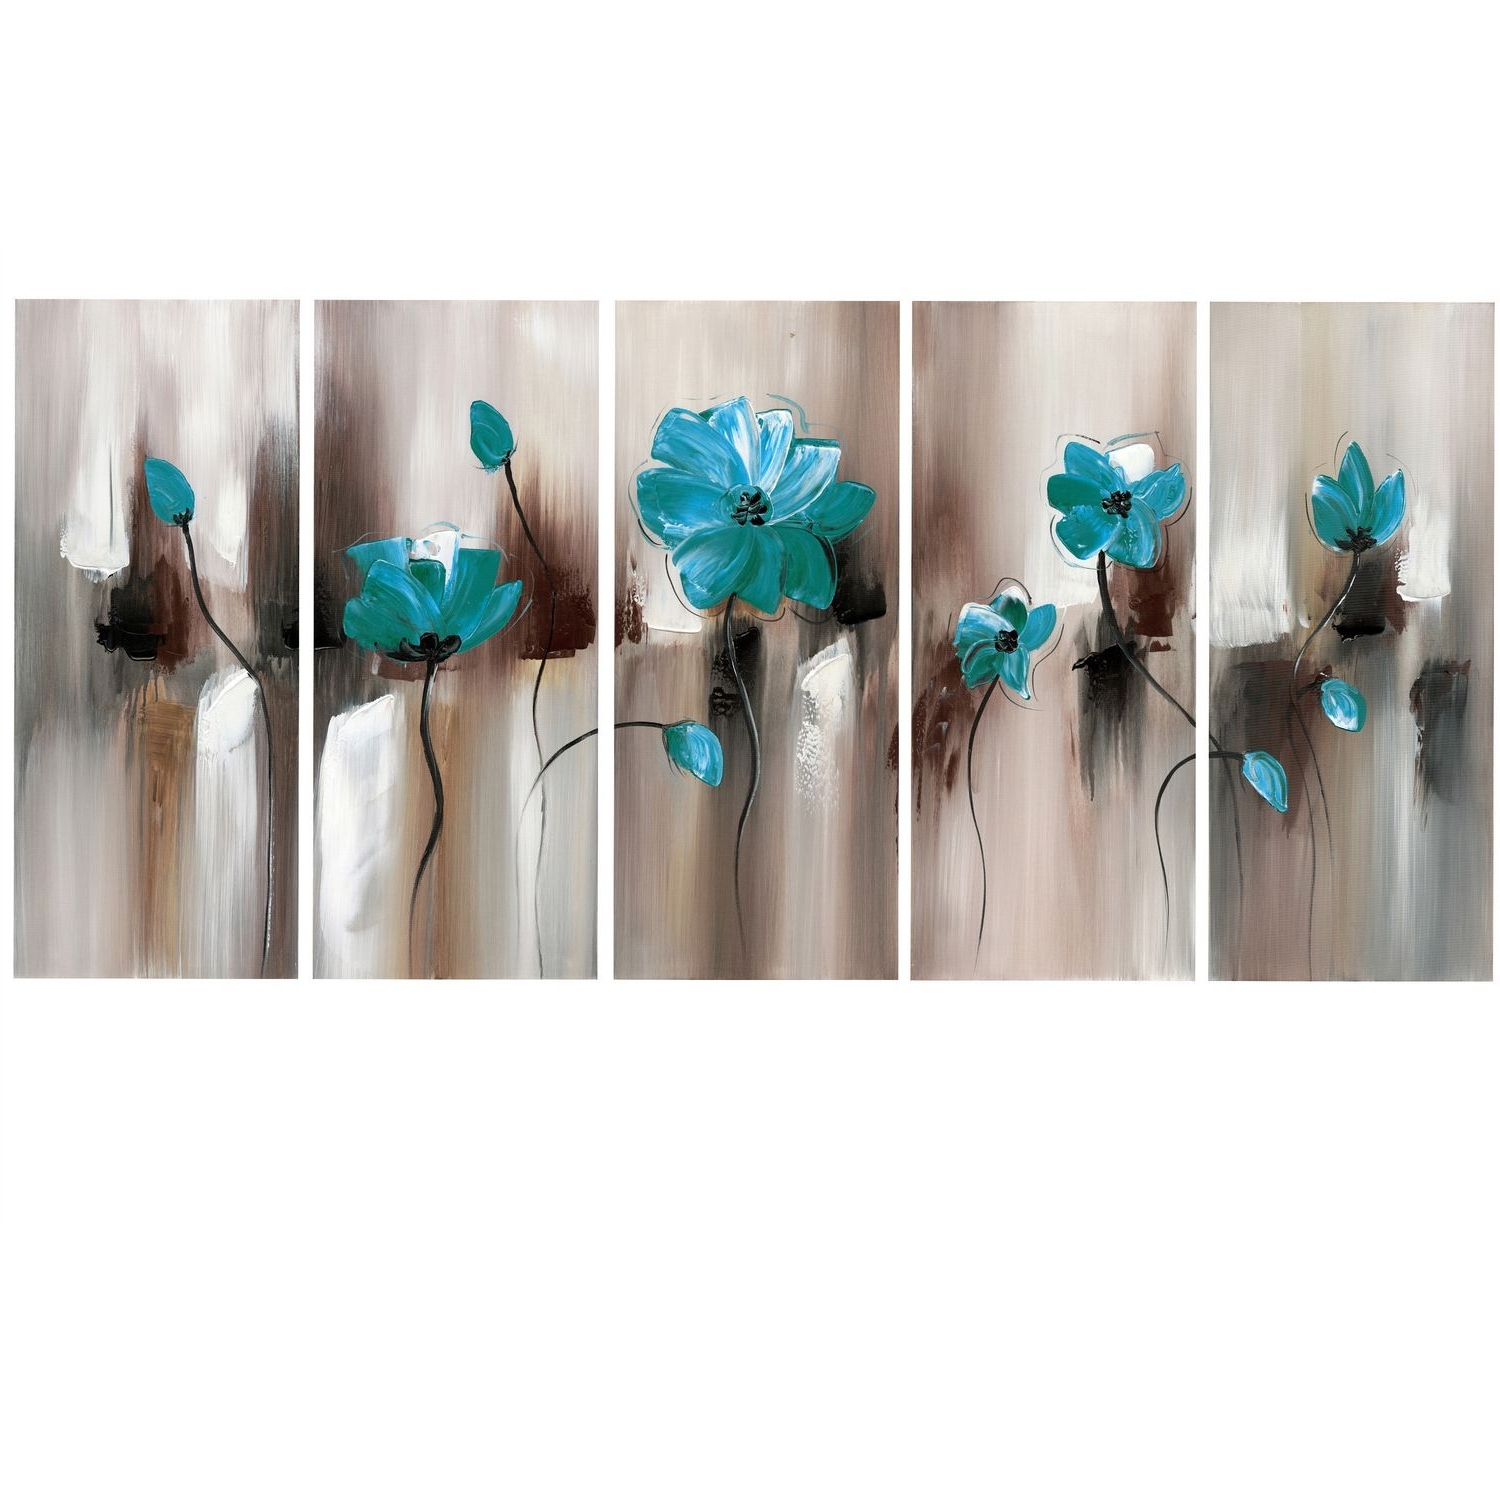 Latest Design Art Green Emerald Modern Flower Art – Gallery Wrapped Pertaining To Canvas Wall Art In Canada (View 6 of 15)